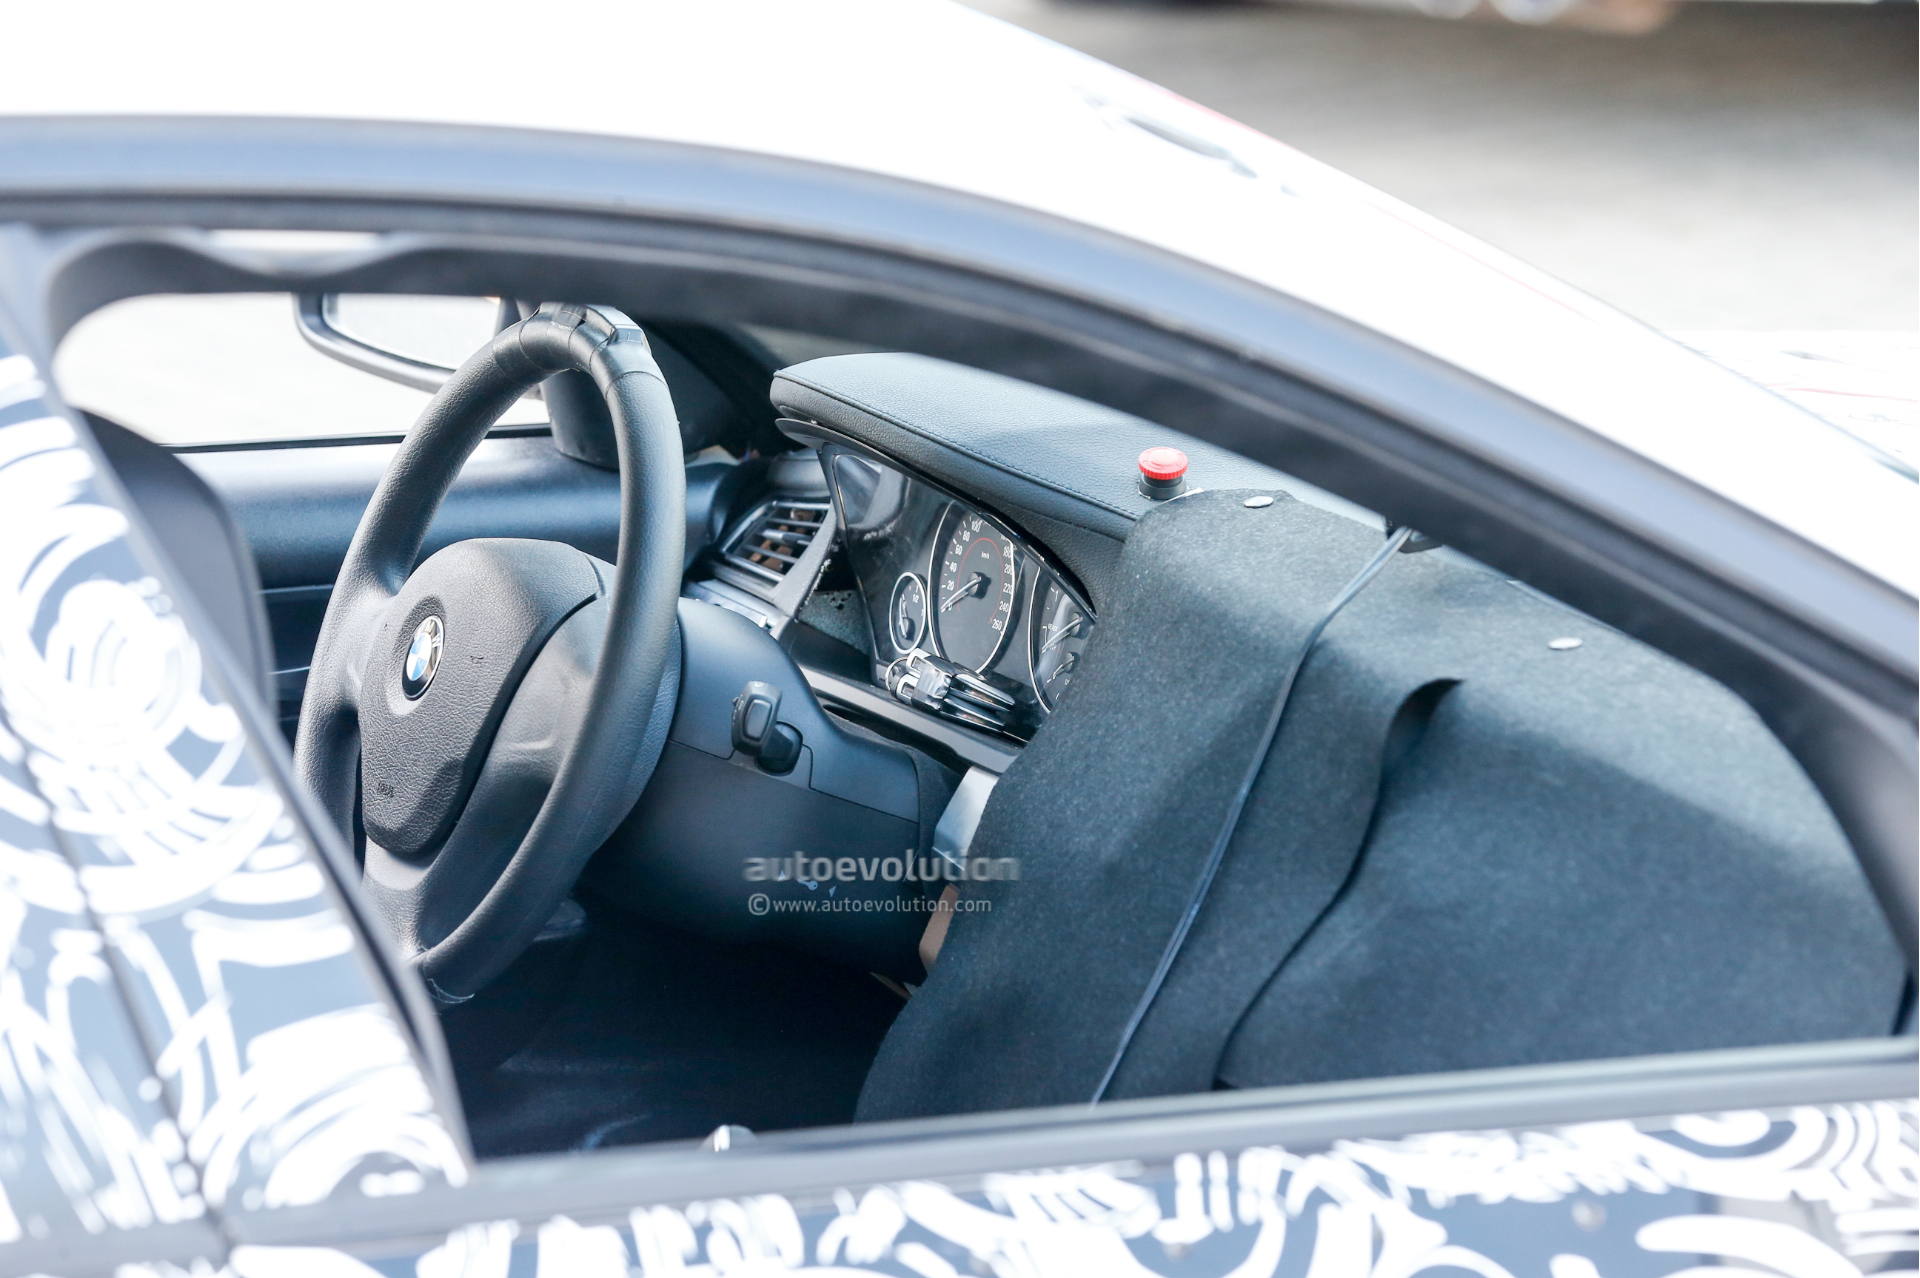 2016 - [BMW] Série 5 Berline & Touring [G30/G31] - Page 4 2016-bmw-5-series-touring-prototype-spied-inside-and-out-photo-gallery_1